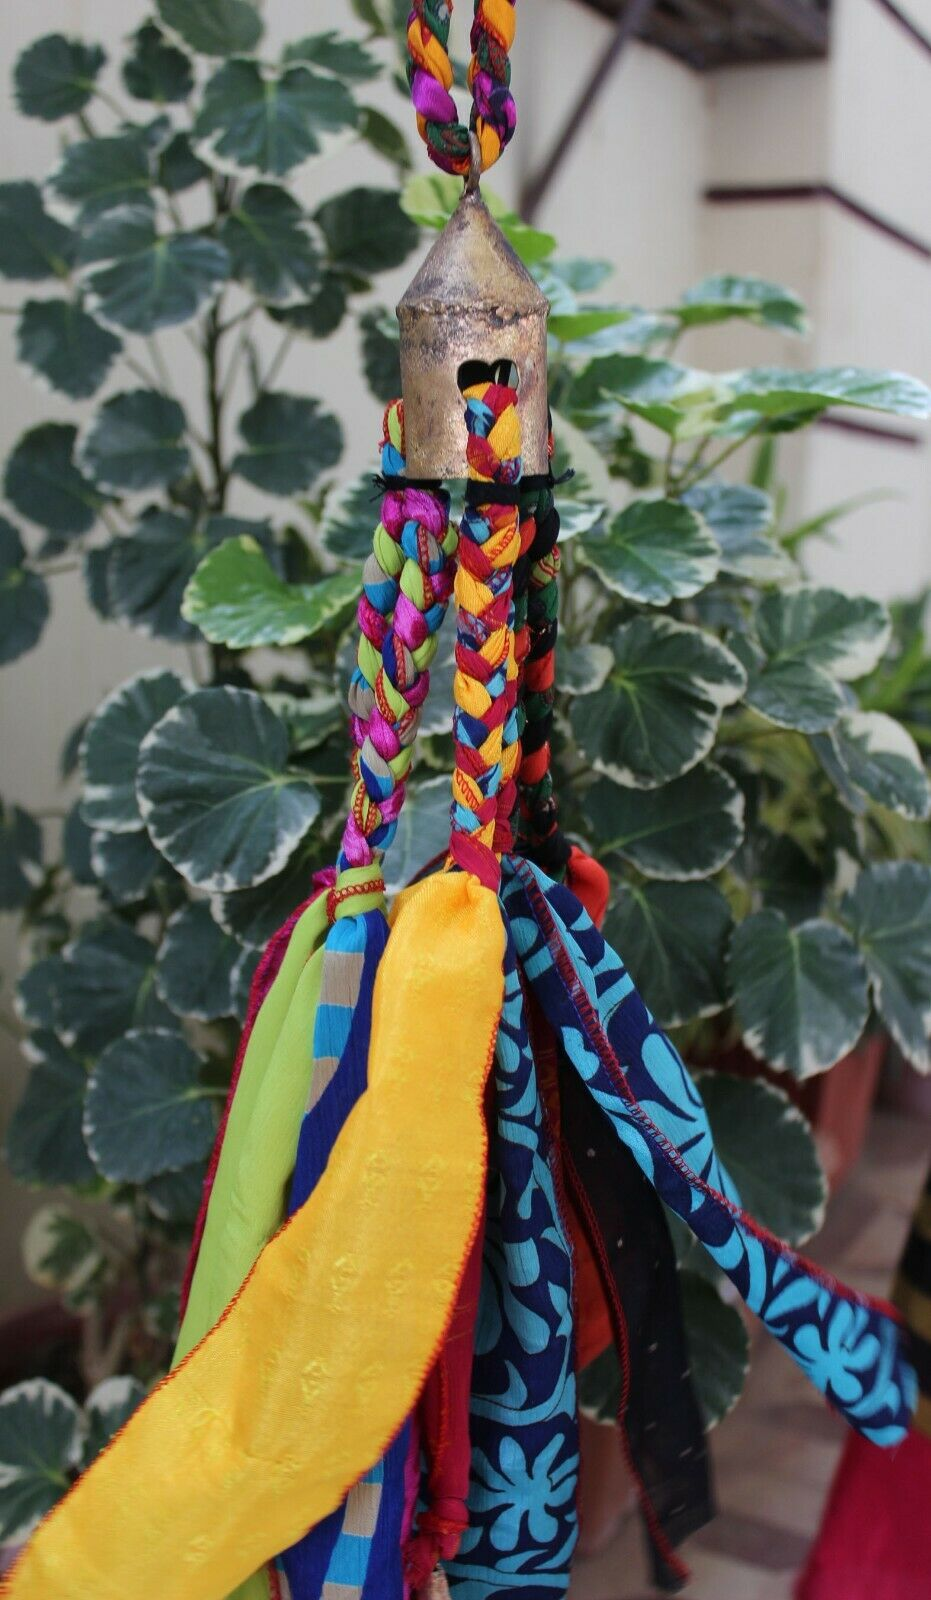 Recycled Silk Sari with Bells Hanging Wind chime Garden Patio Wedding Decoration